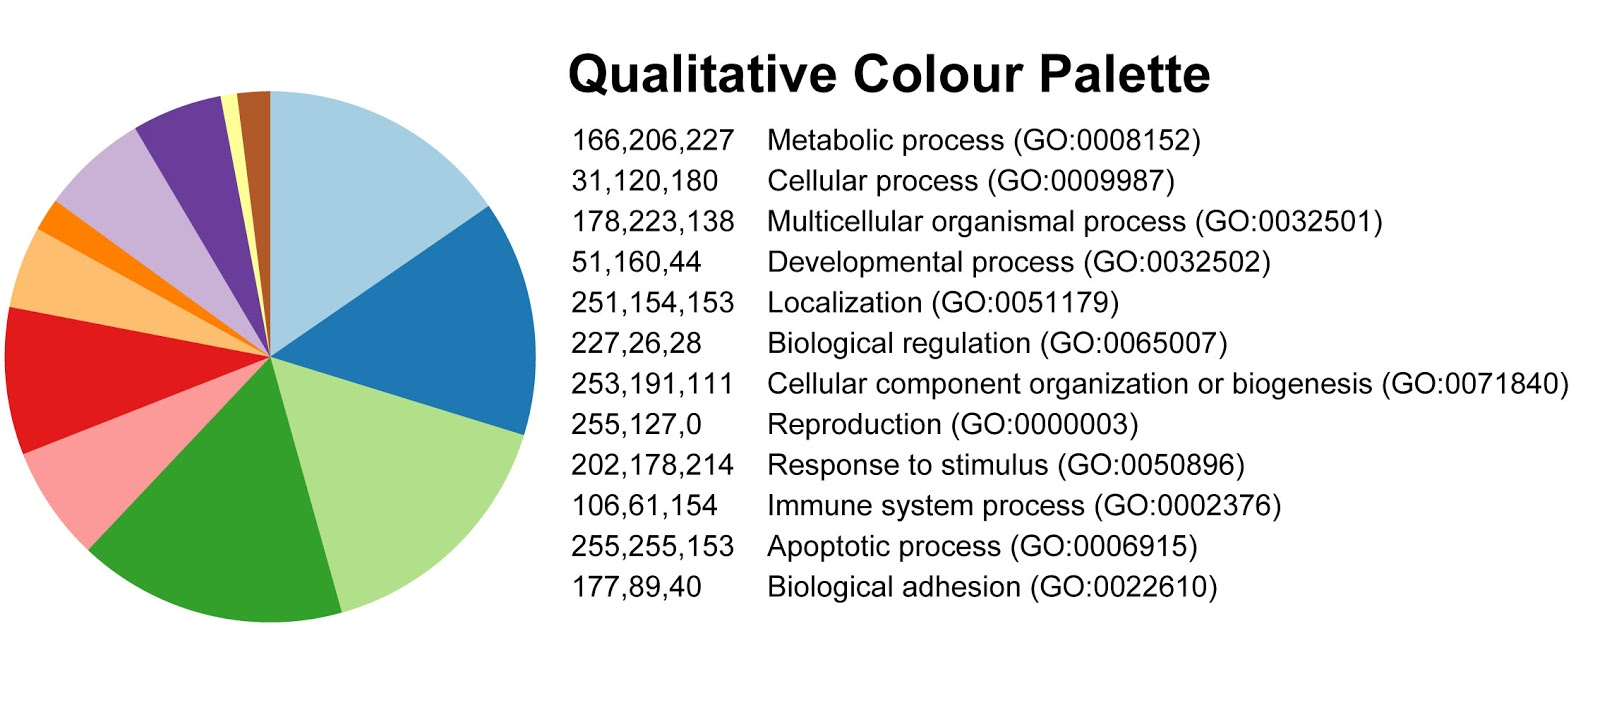 Nina Riddell Brewer Colour Palettes For Data Visualization